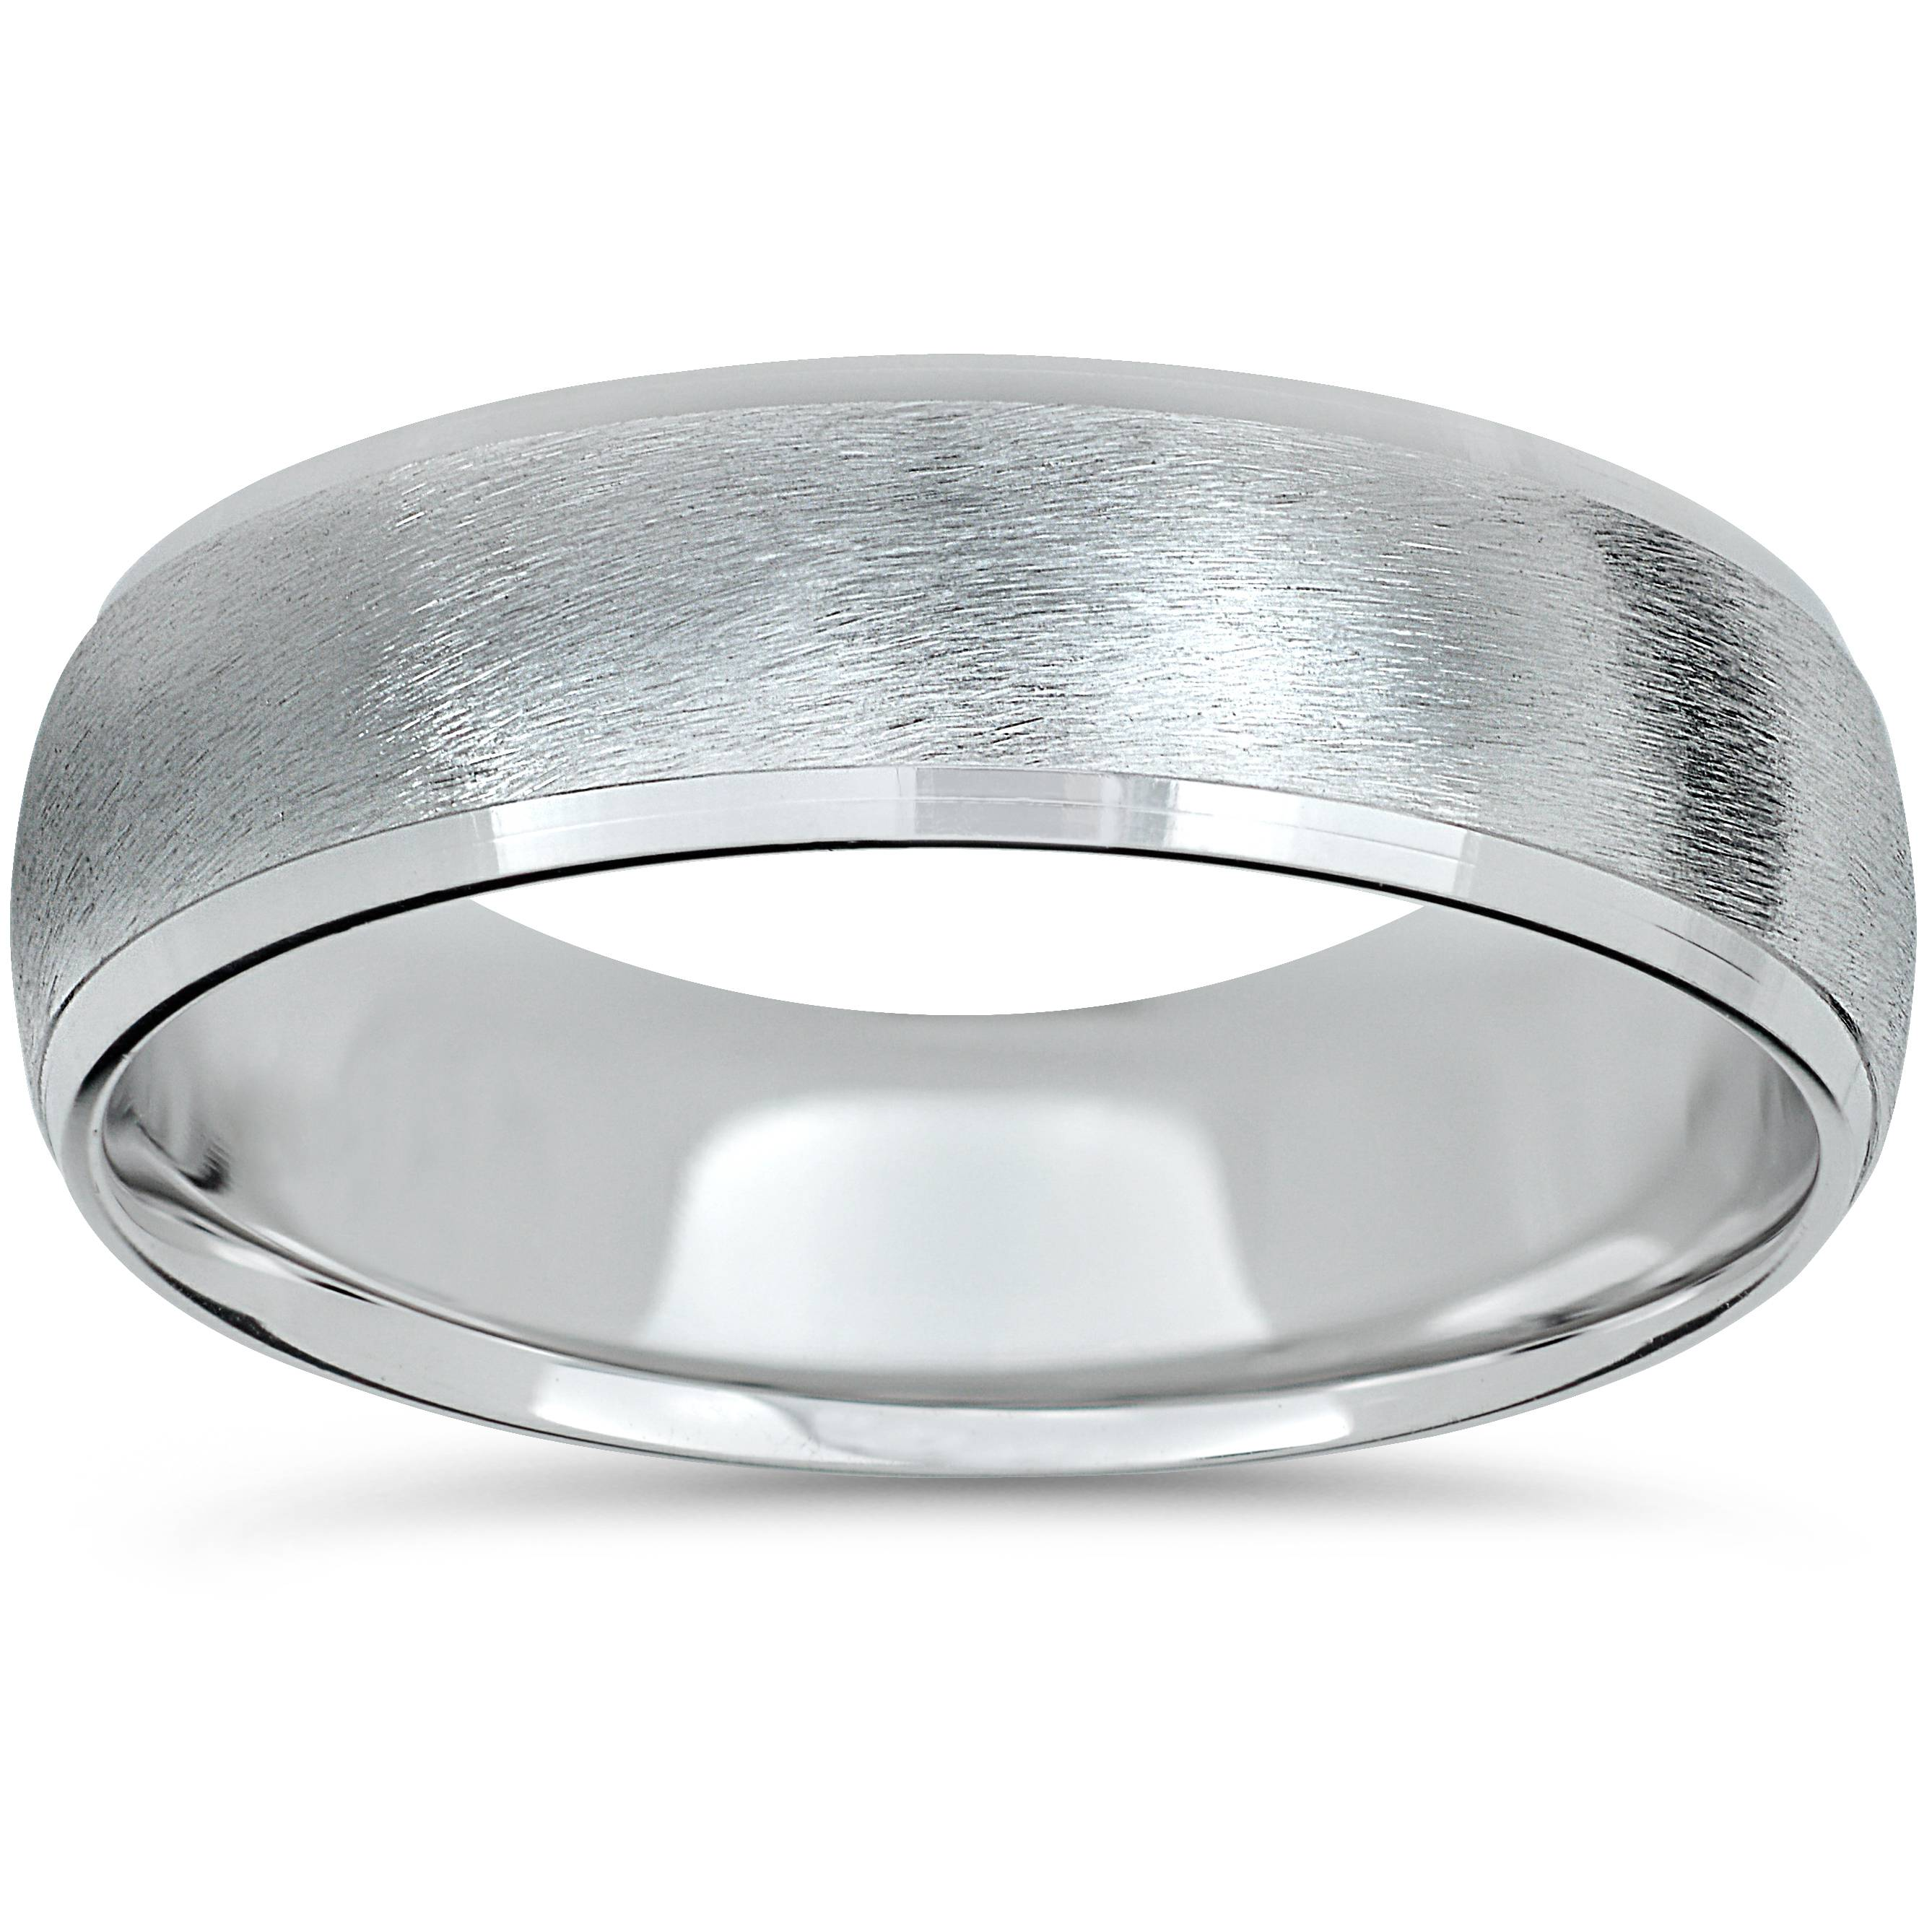 Platinum Wedding Band Mens Brushed Beveled Ring